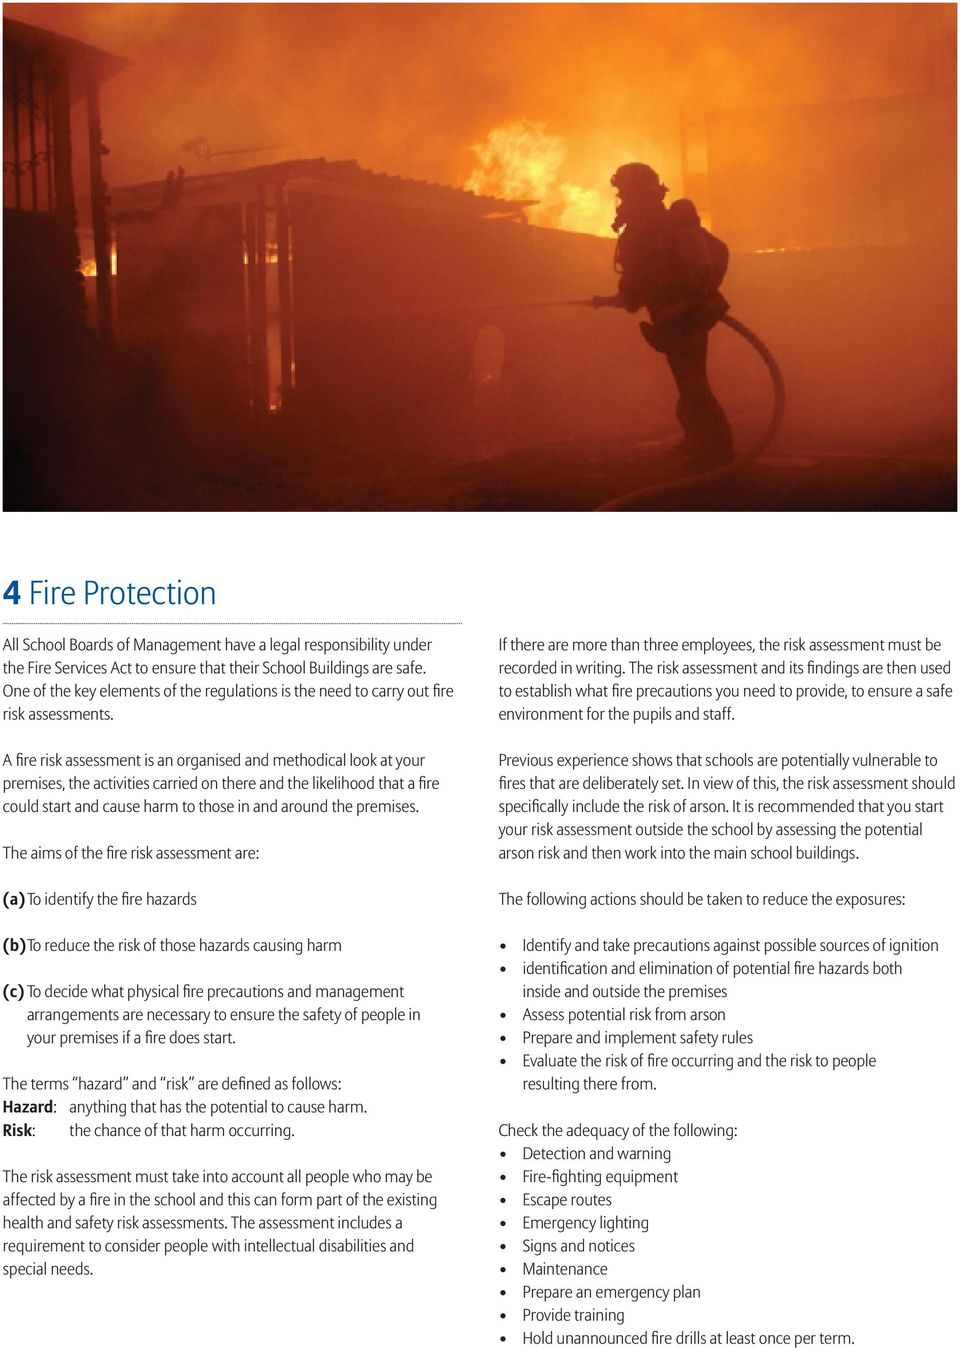 A fire risk assessment is an organised and methodical look at your premises, the activities carried on there and the likelihood that a fire could start and cause harm to those in and around the